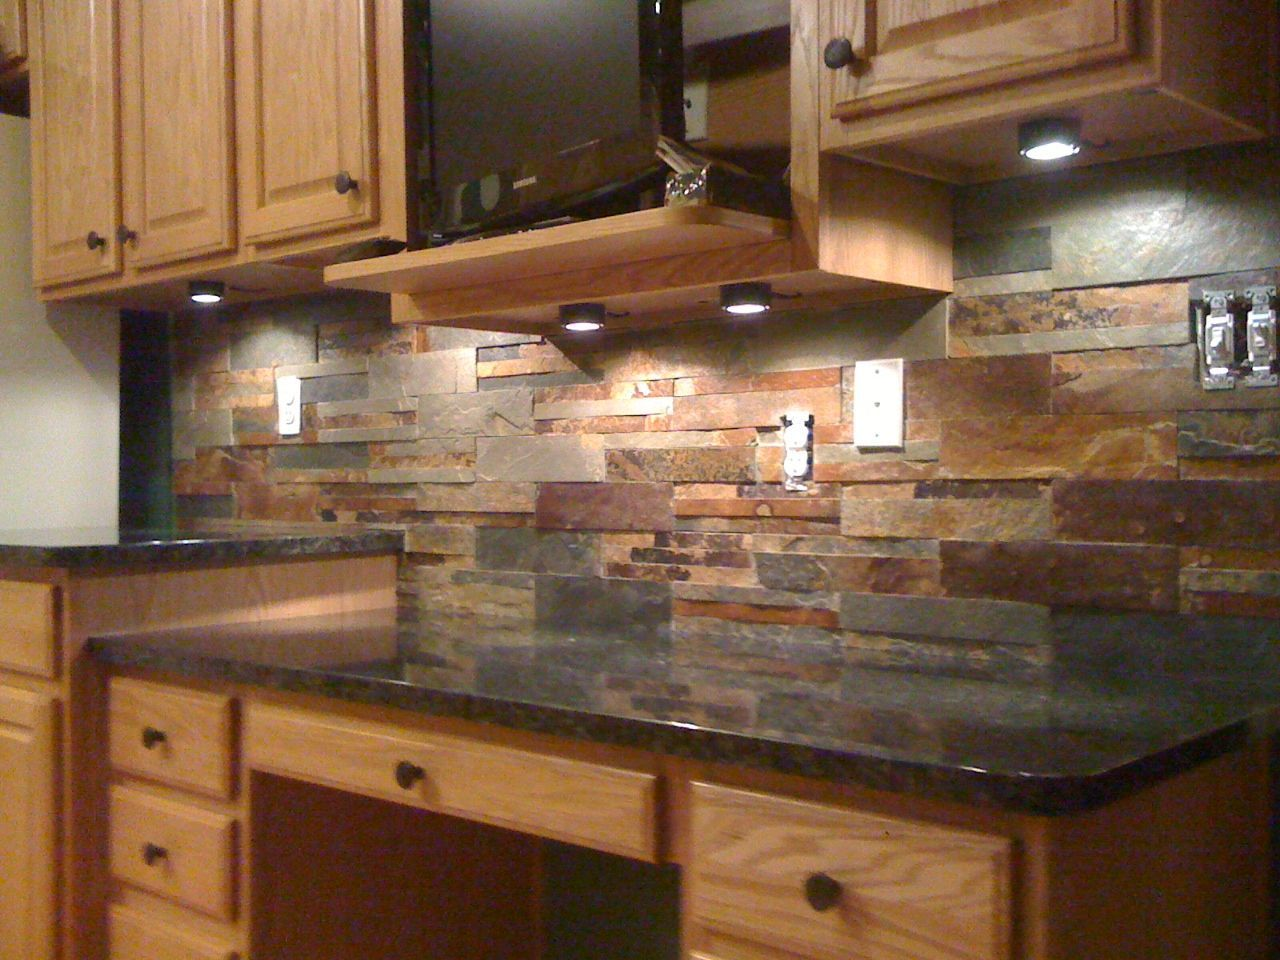 Granite Kitchen Tiles Ideas For Backsplash With Black Granite Countertops Google